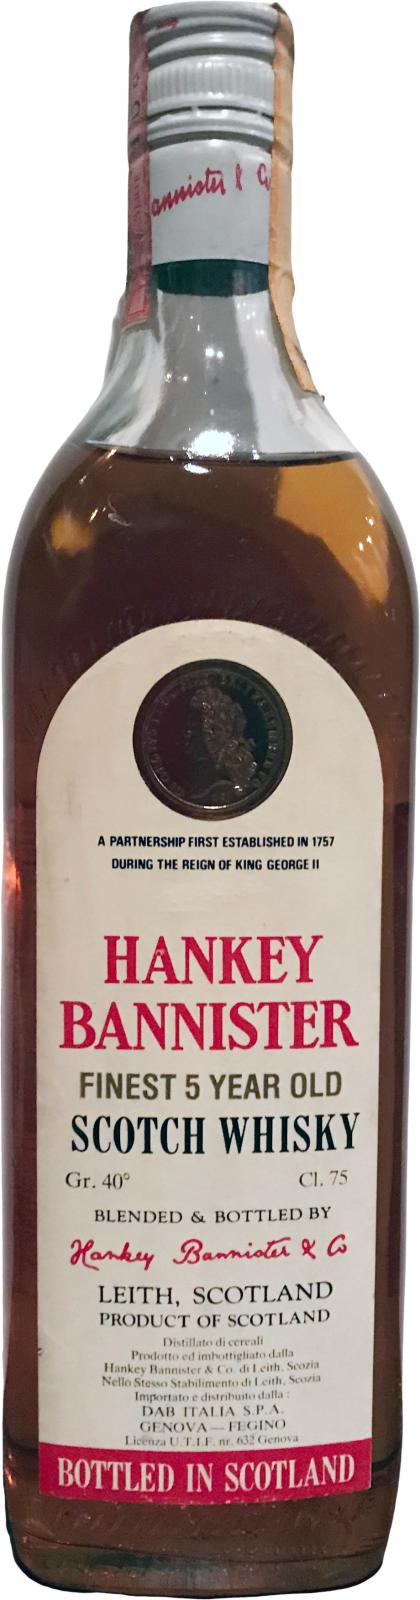 Hankey Bannister 05-year-old